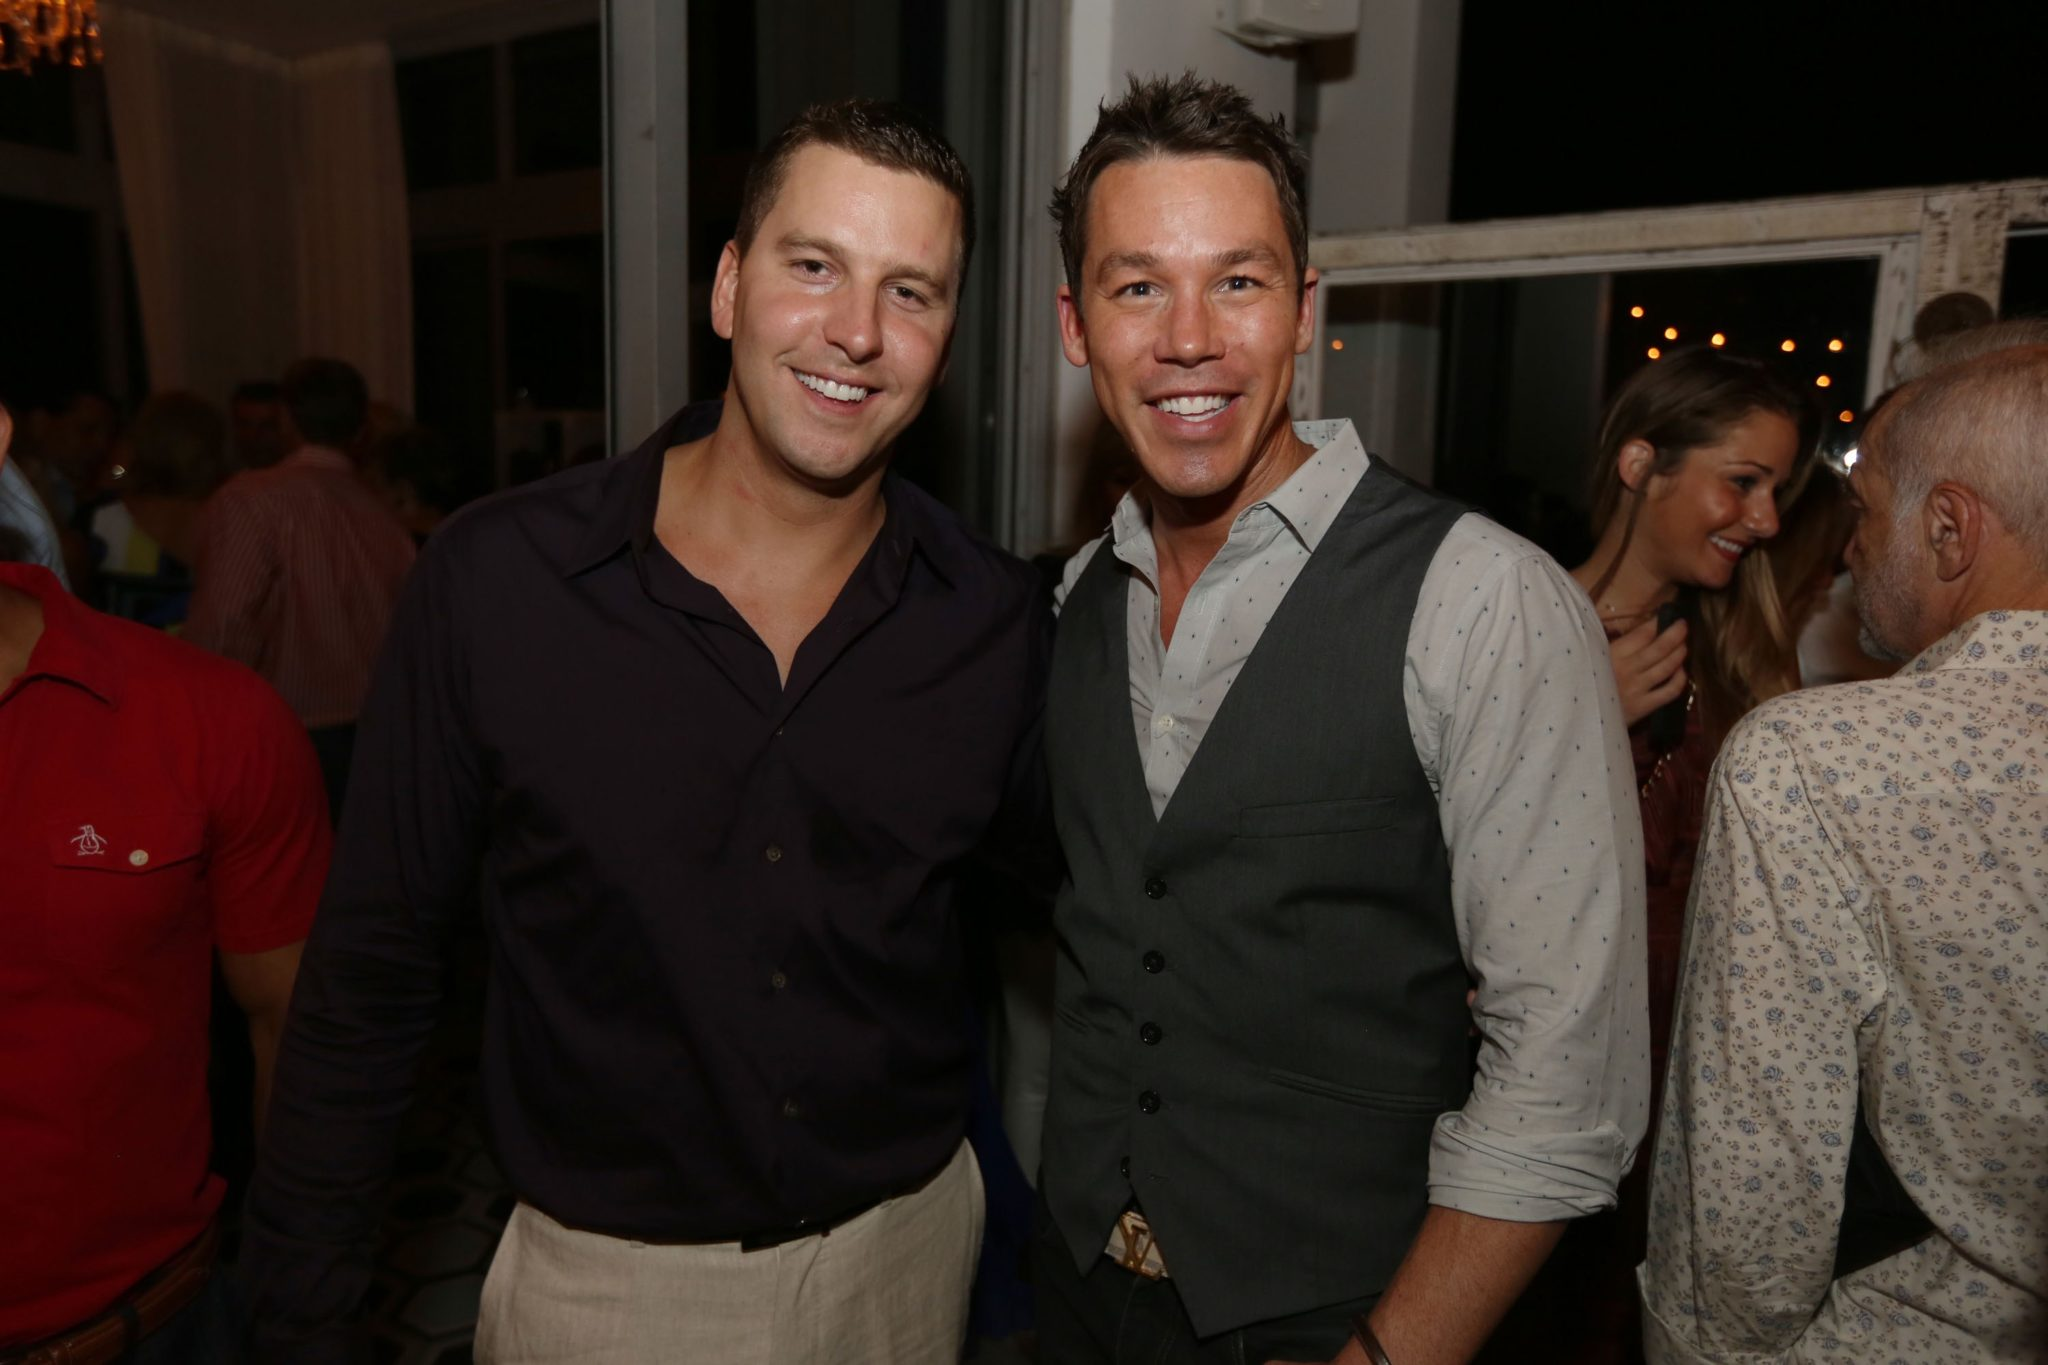 David Bromstad and Jeffery Glasko